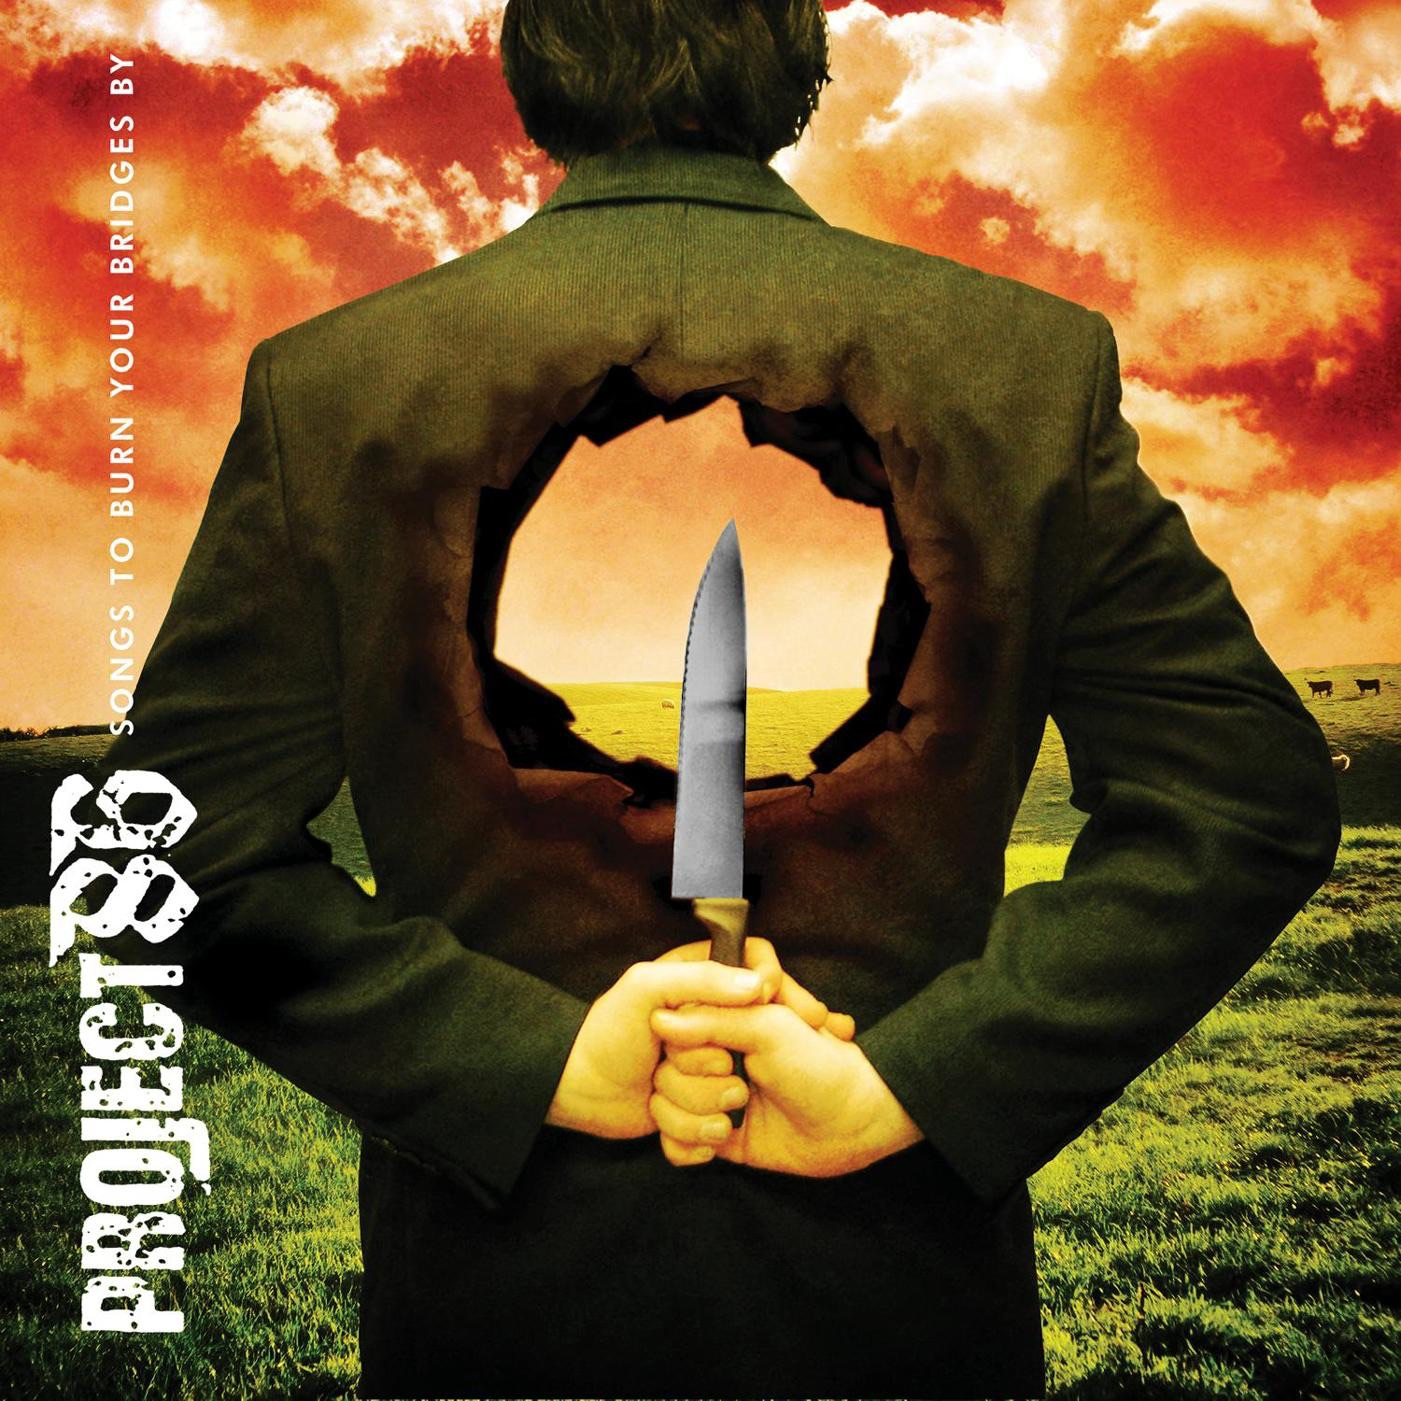 Project 86 album Songs to Burn Your Bridges By